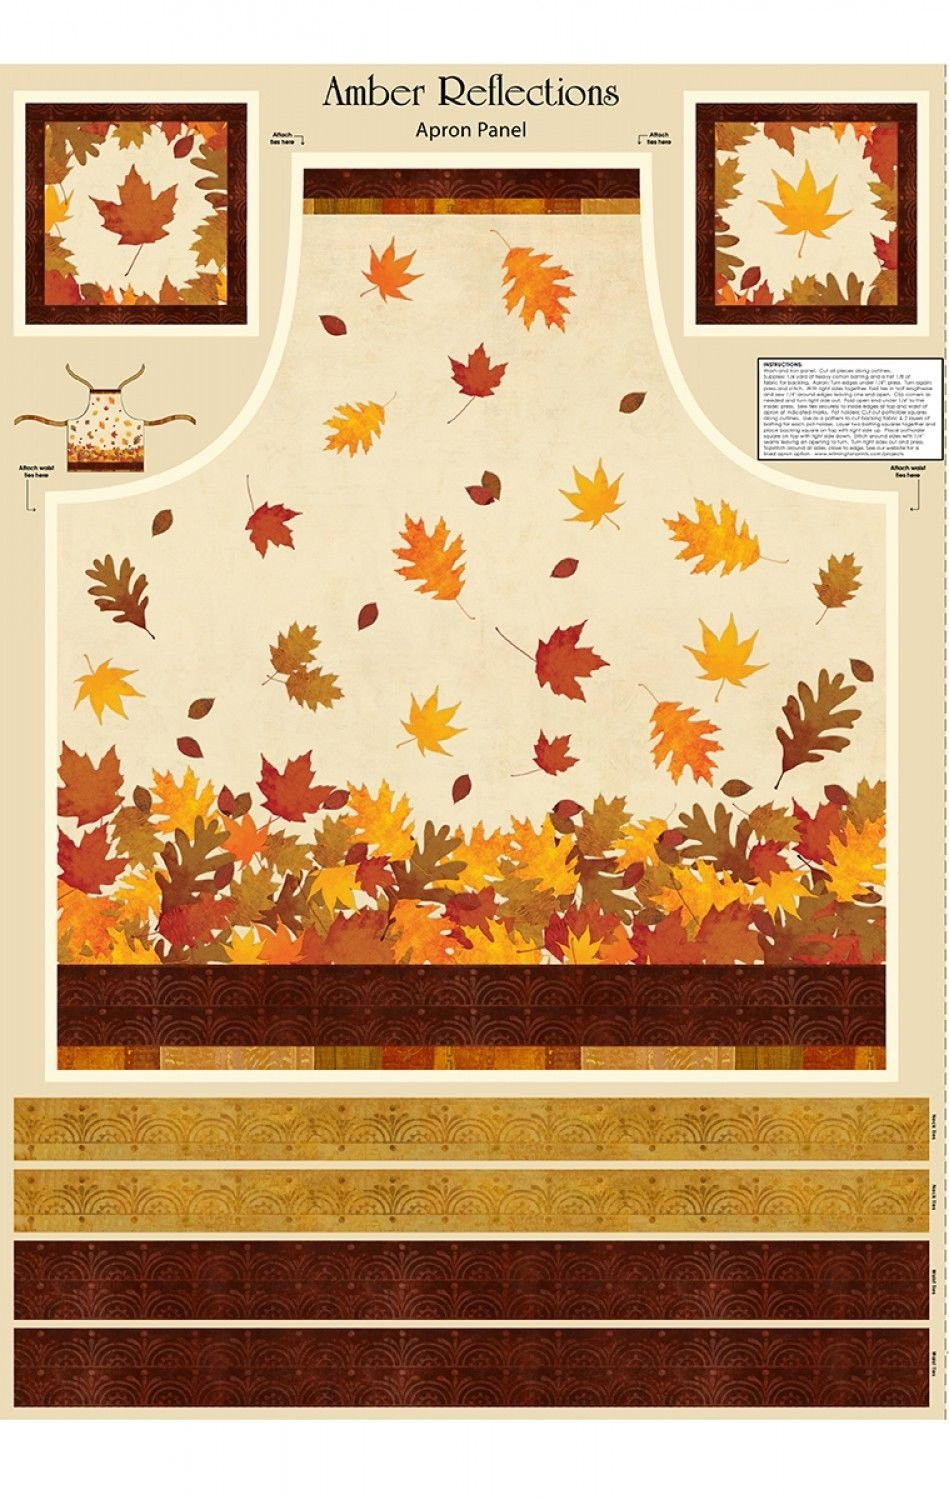 Amber Reflections Apron Panel by Wilmington Prints